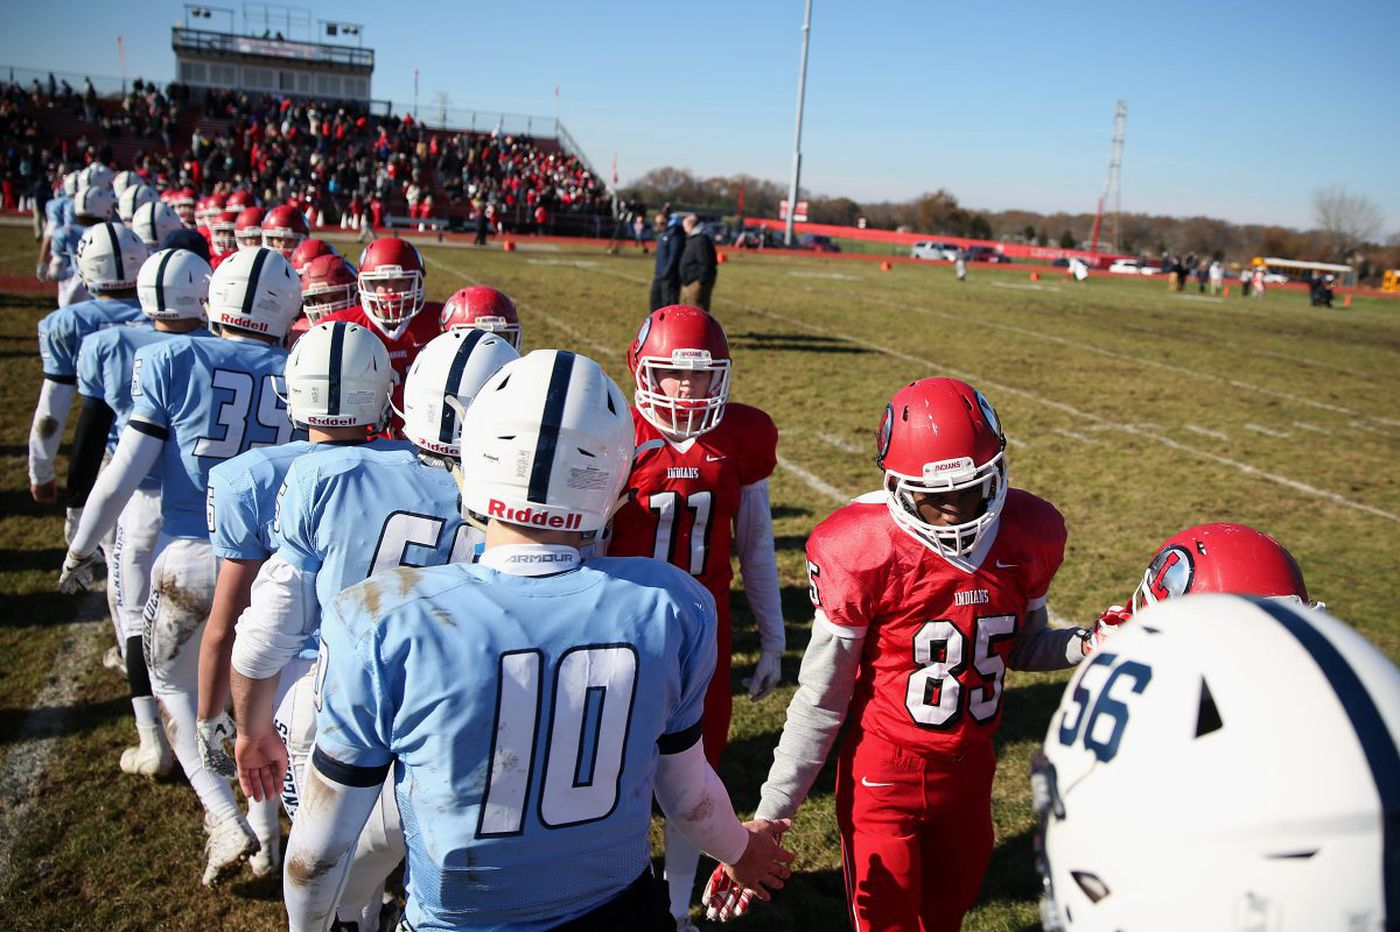 New Jersey proposal: Allow multiple schools to join forces, combine teams